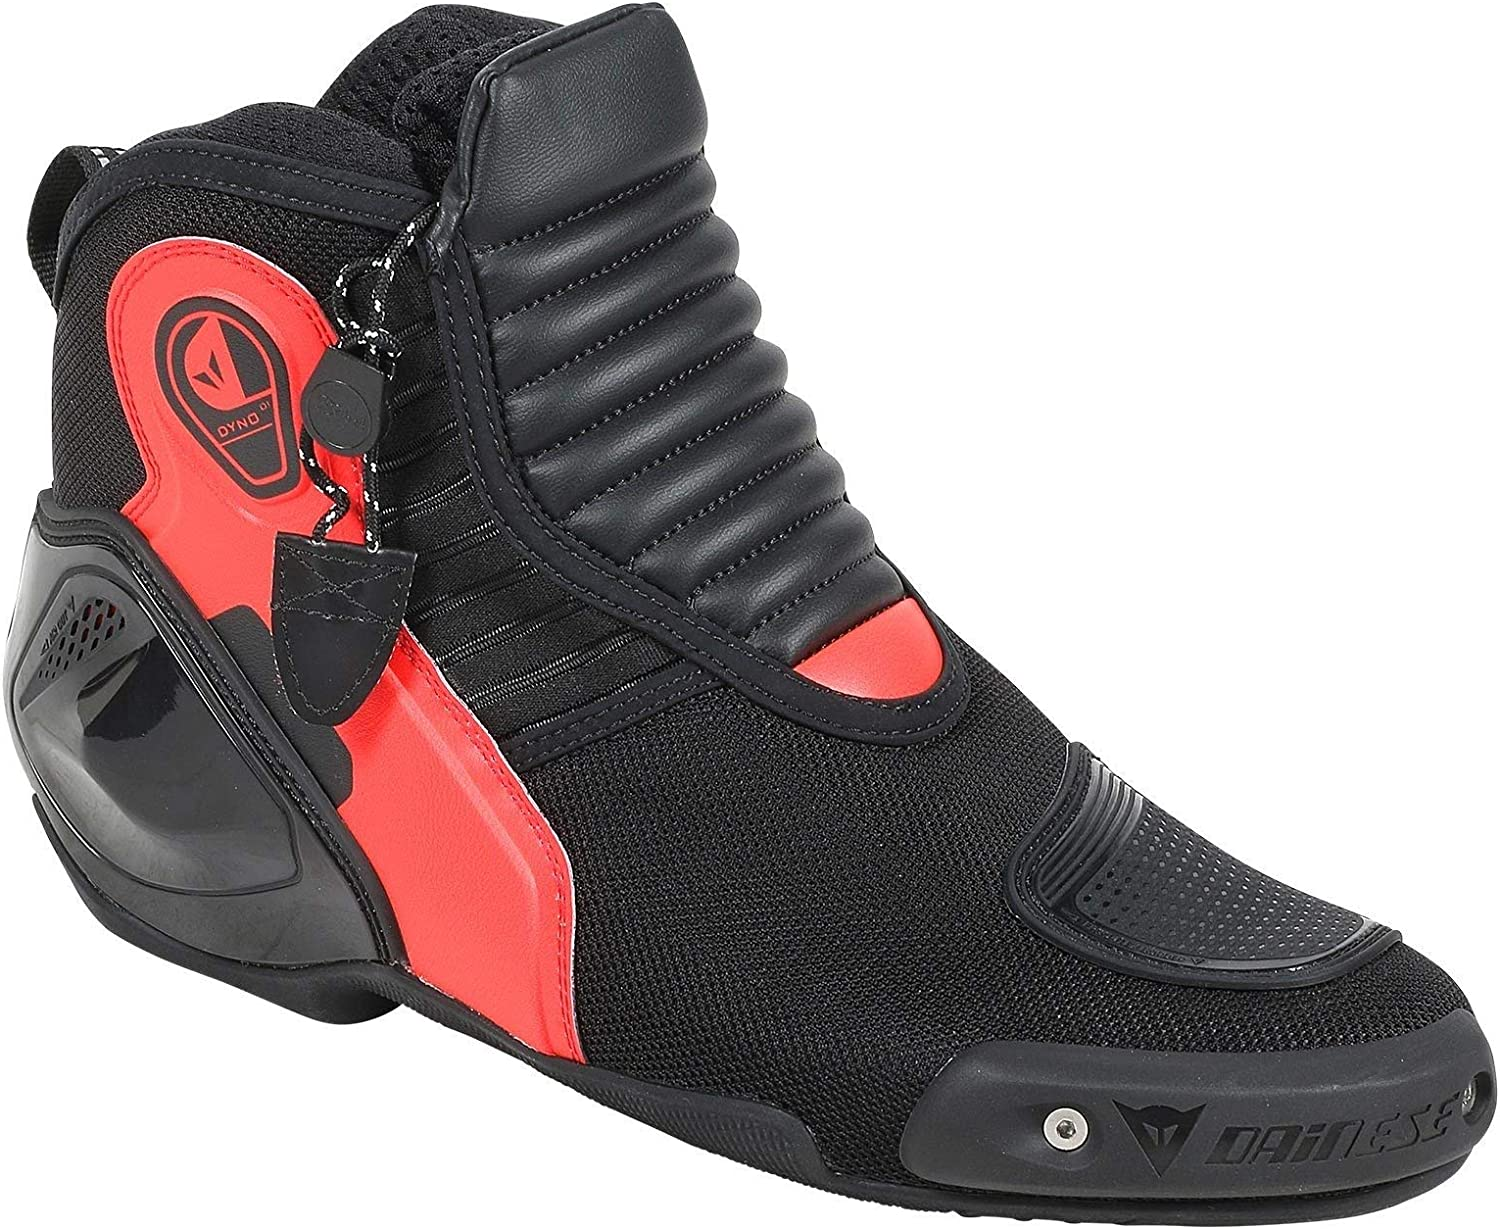 Dainese Dyno D1 Shoes (42) (BlackFluorescent RED)